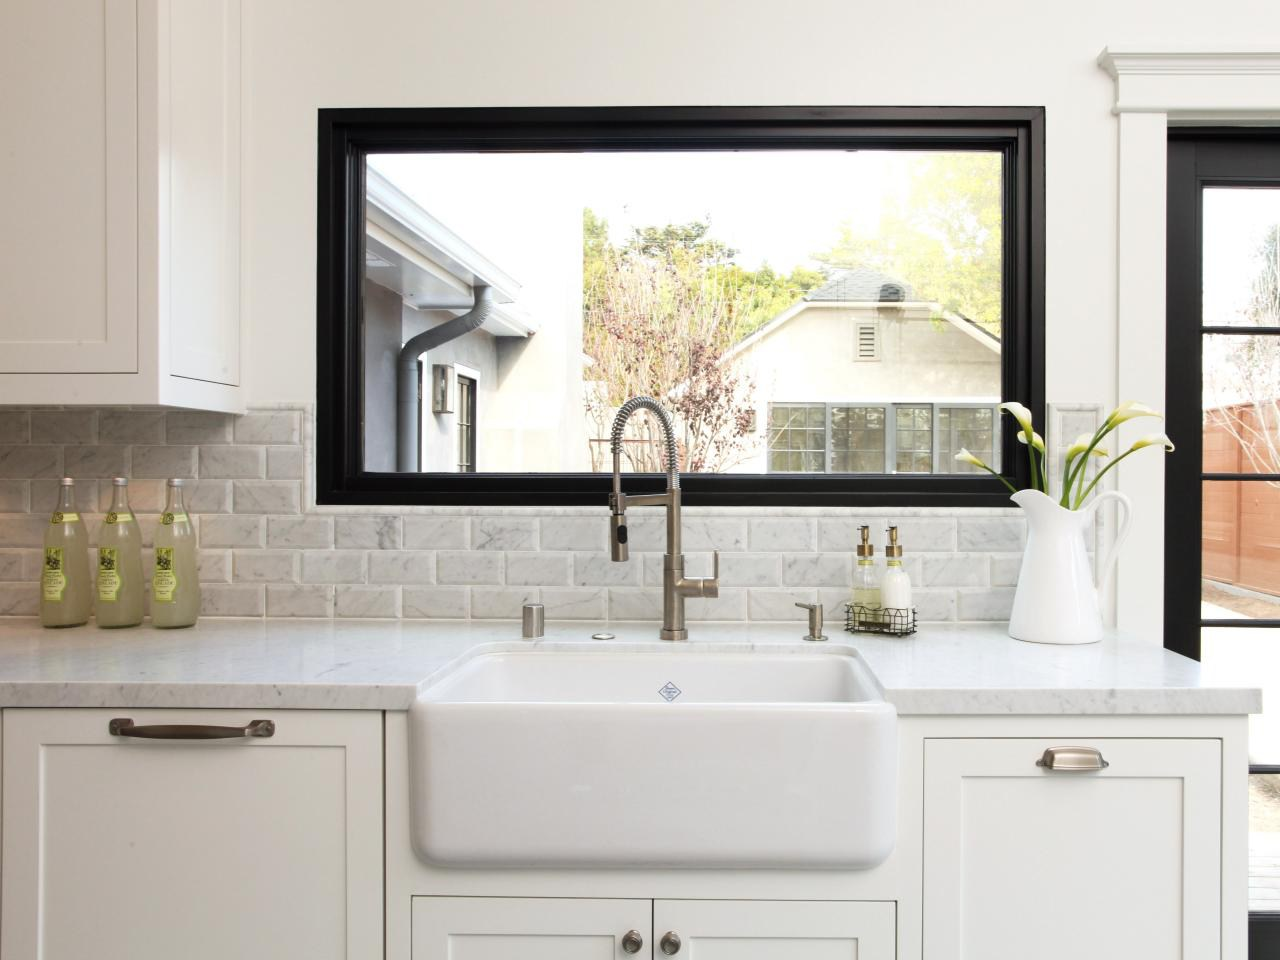 3. Black and White Kitchen With Organised Soap Dispensers